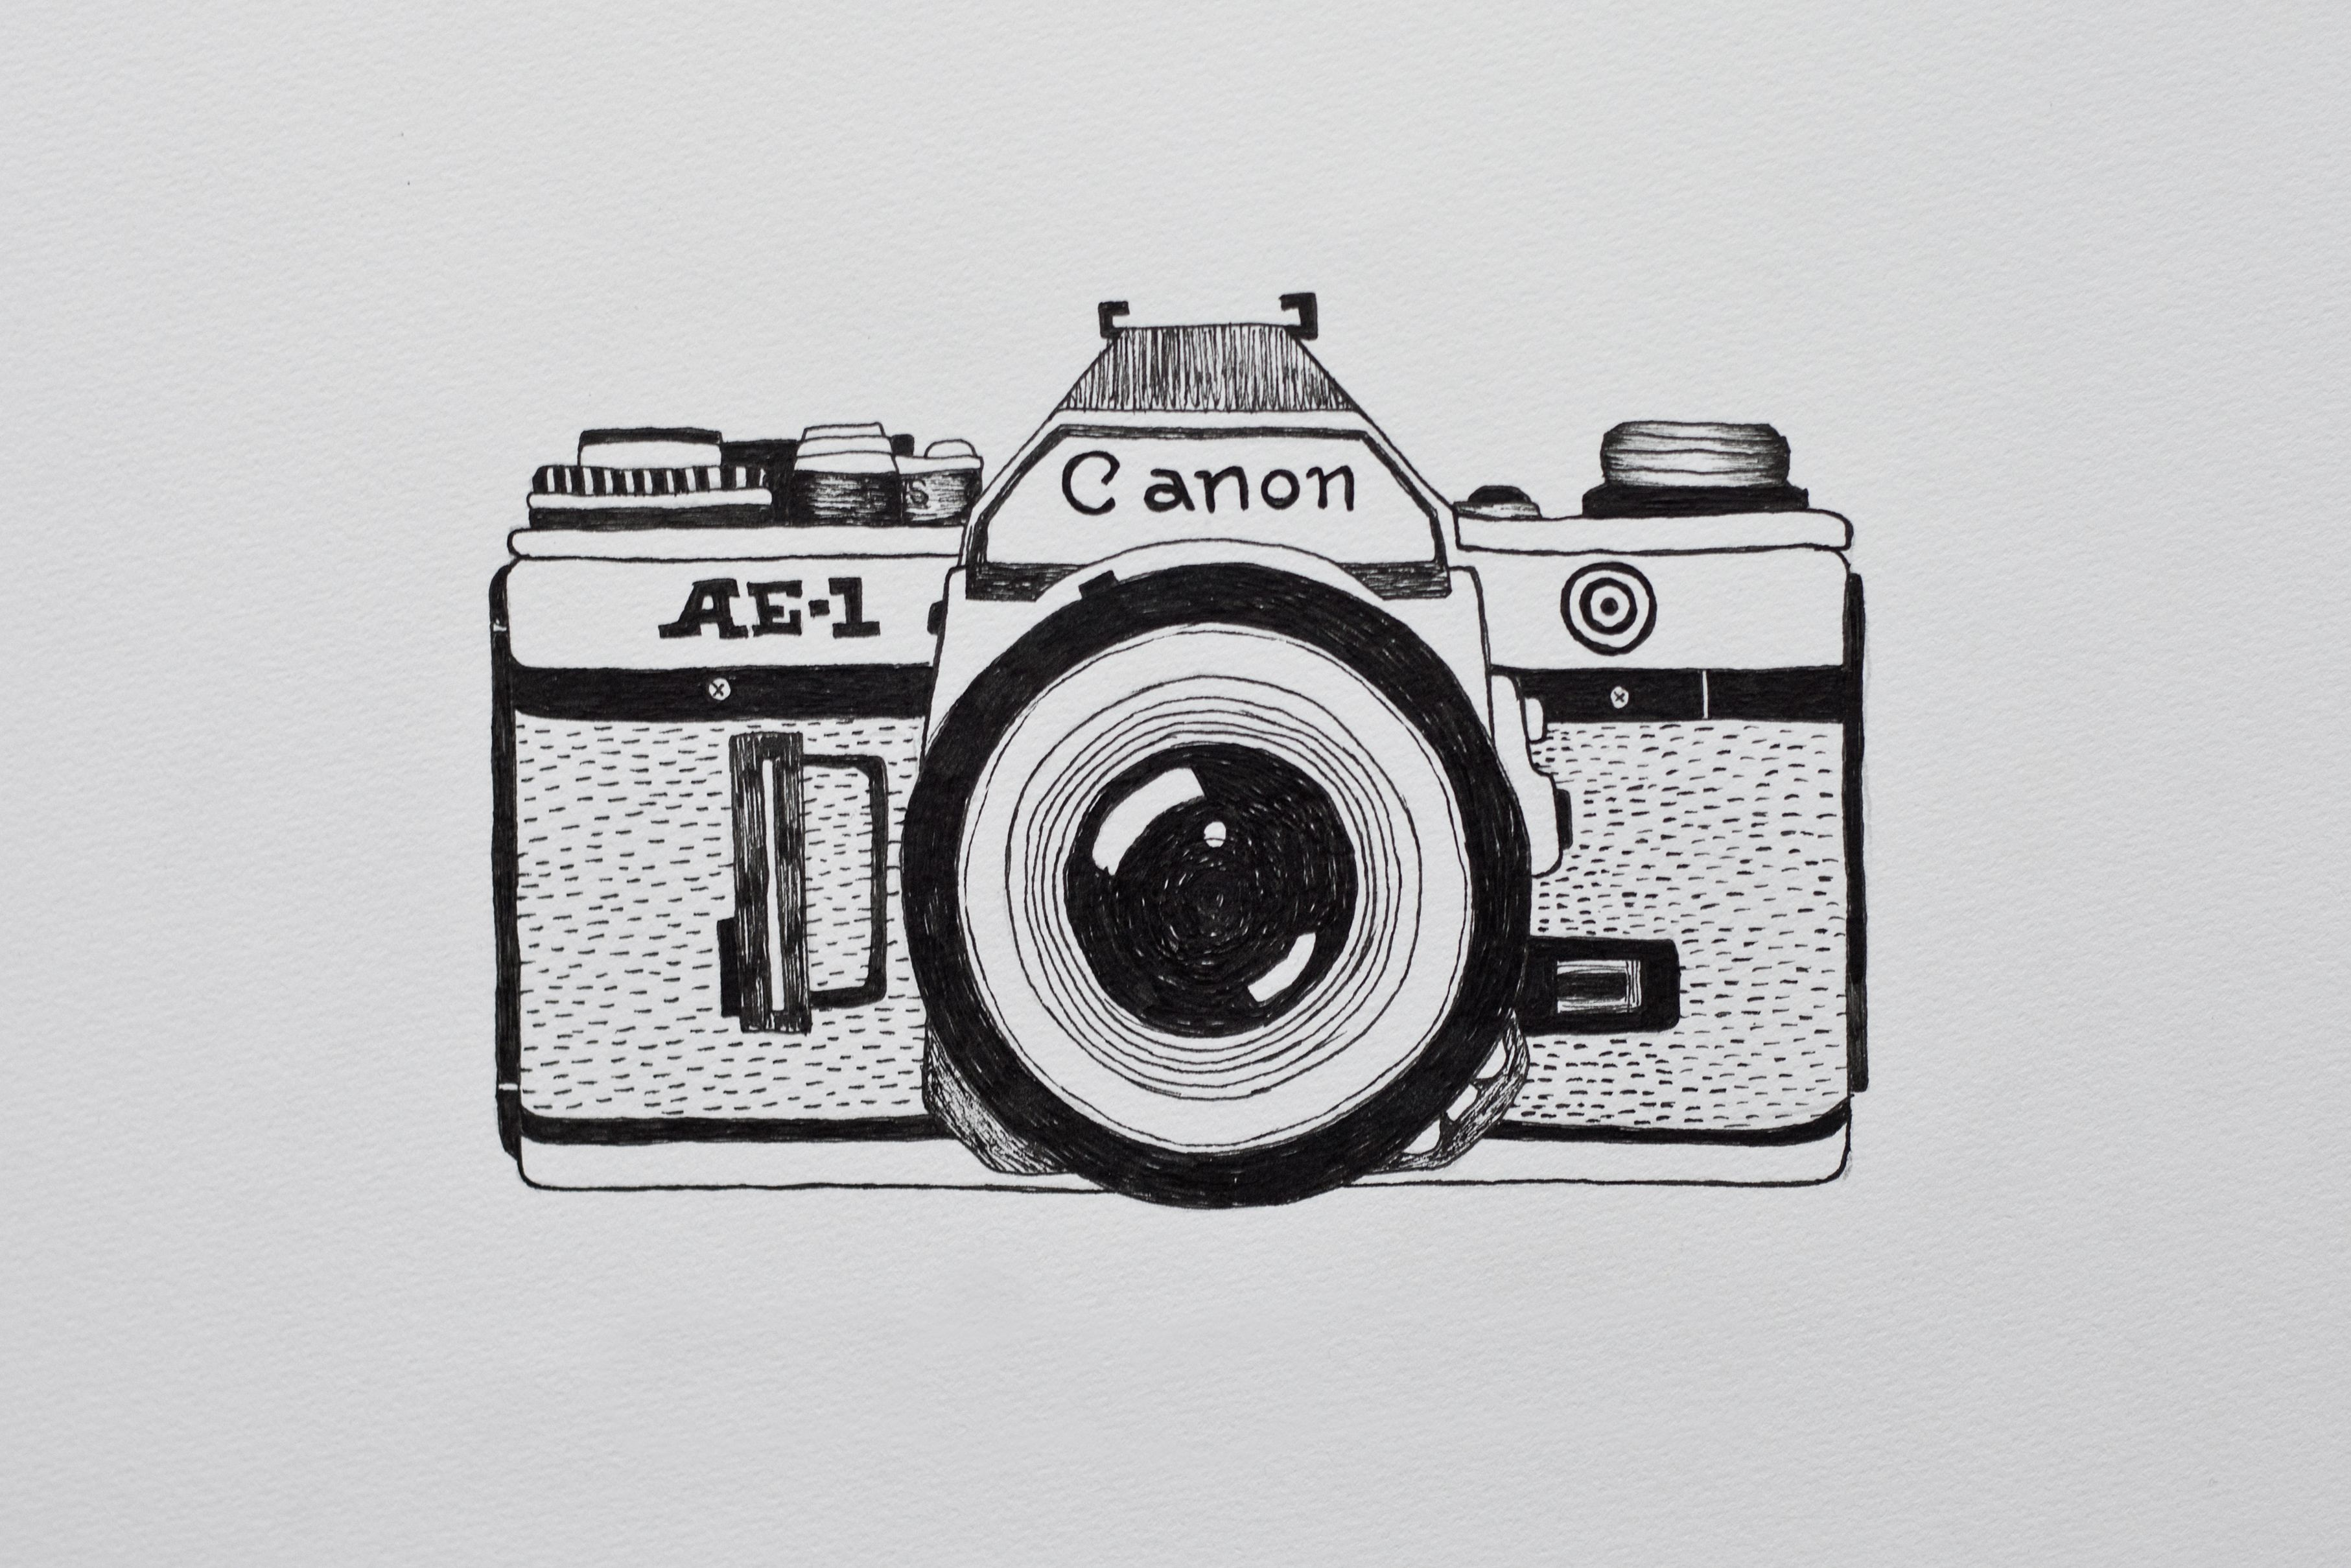 It's just an image of Crazy Canon Camera Drawing